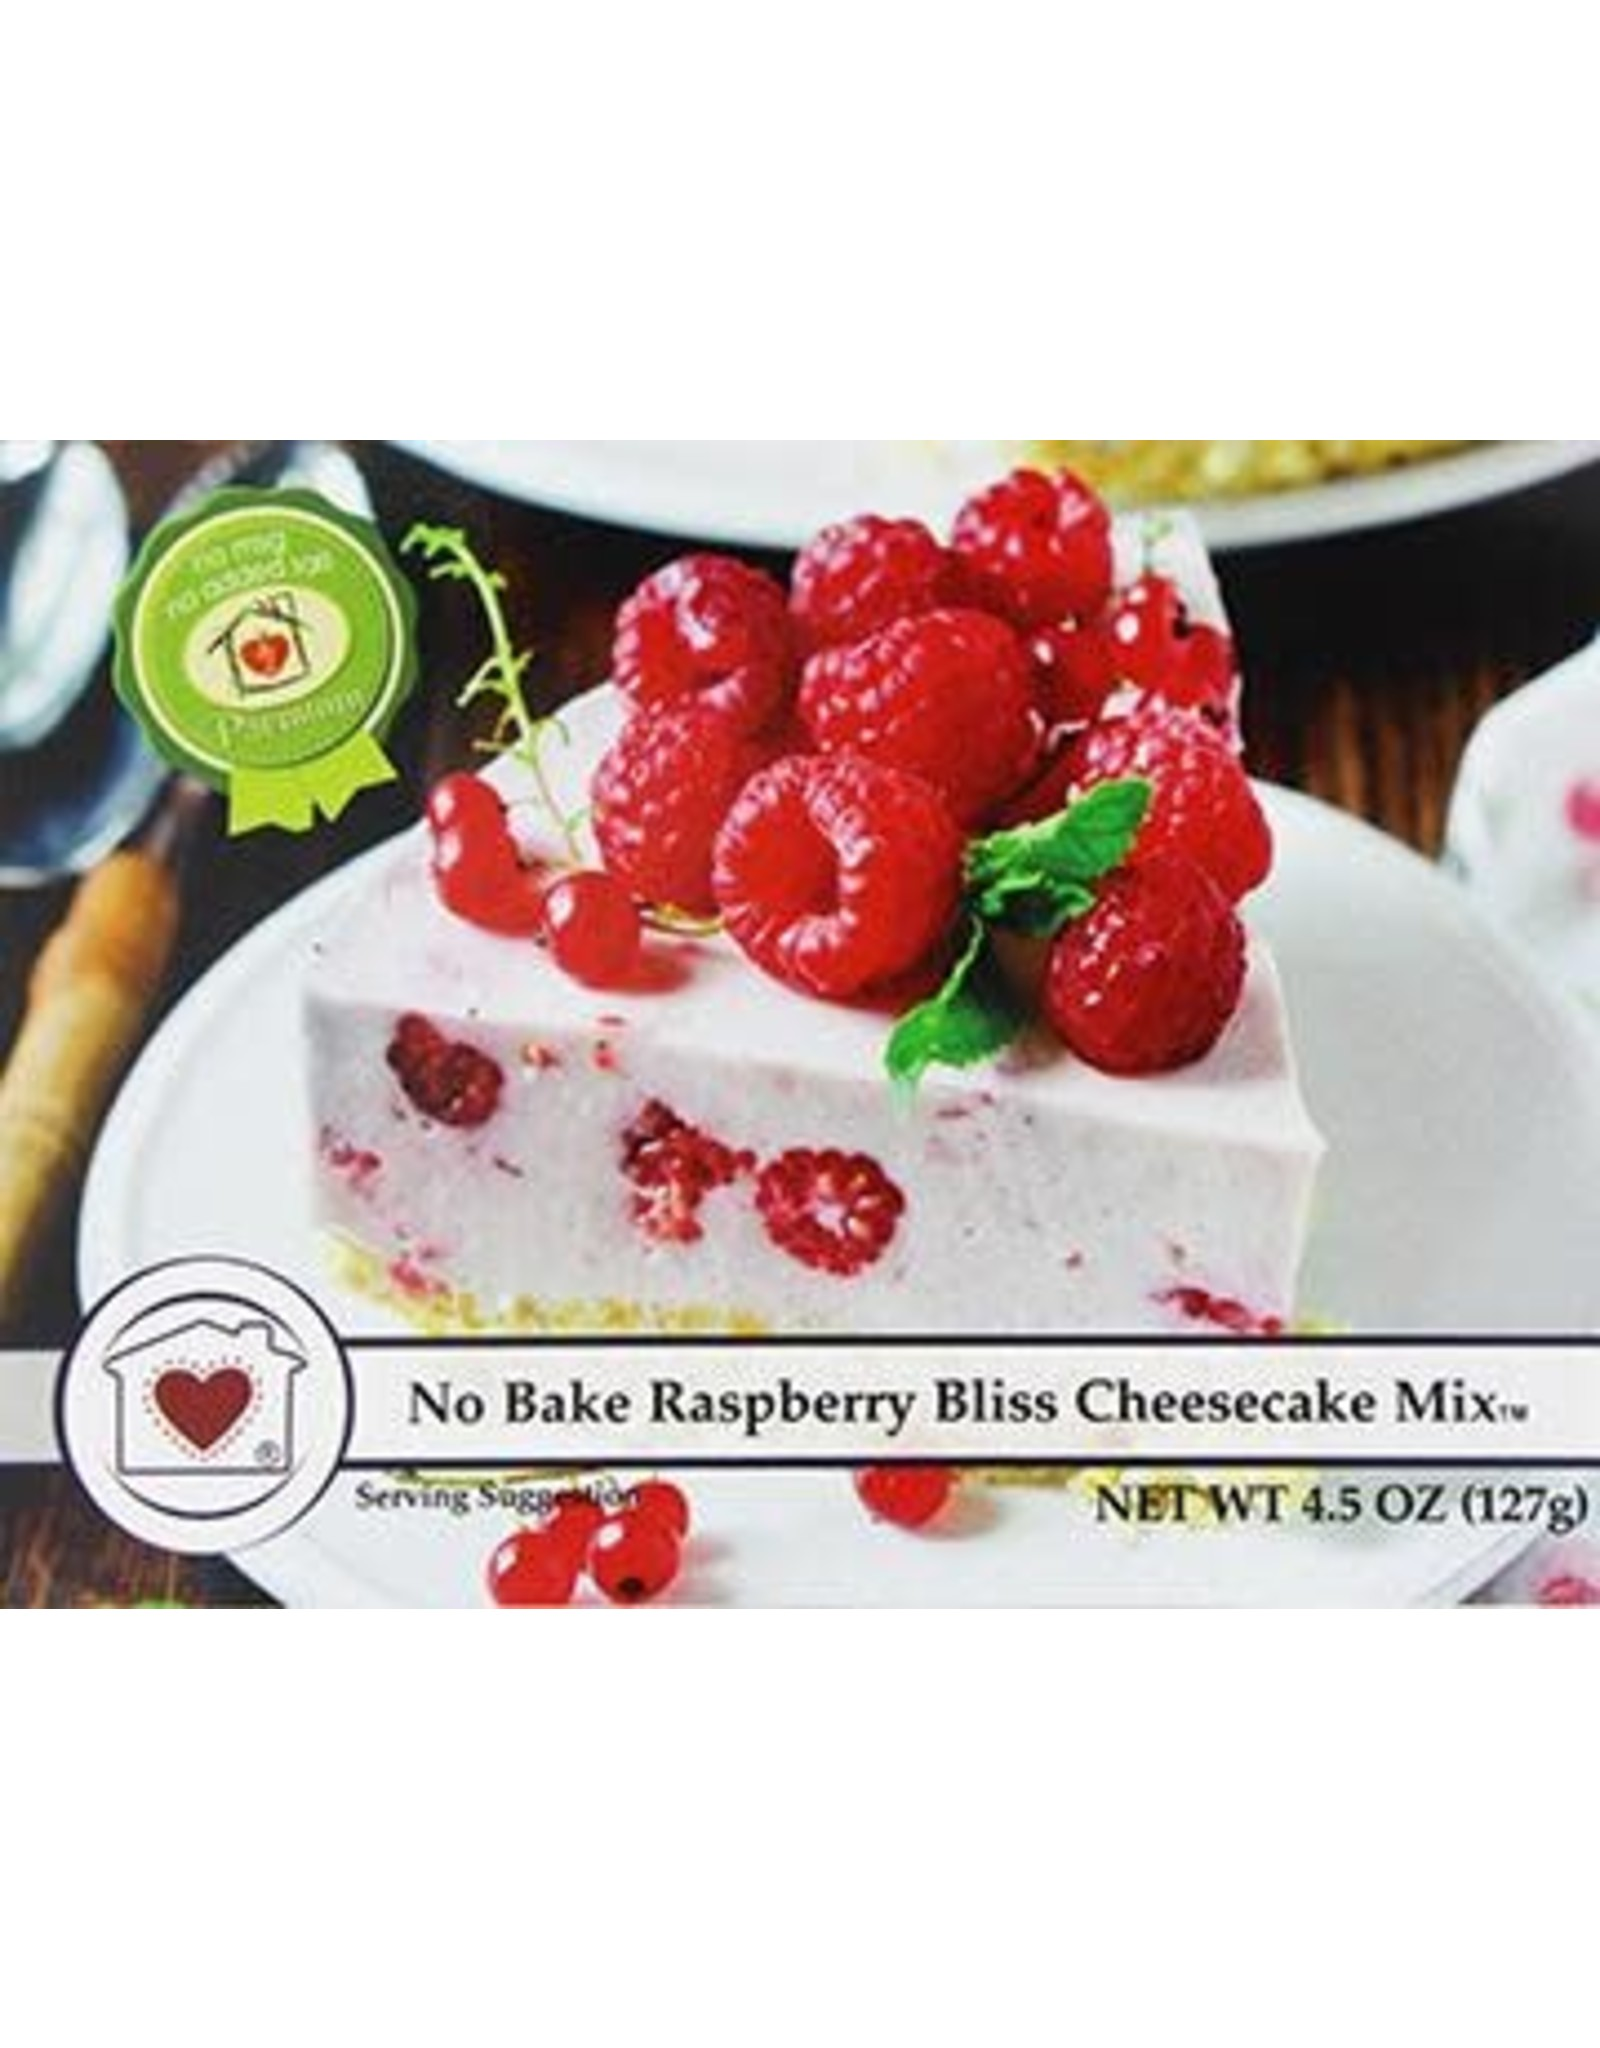 Country Home Creations NO BAKE RASPBERRY BLISS CHEESECAKE MIX